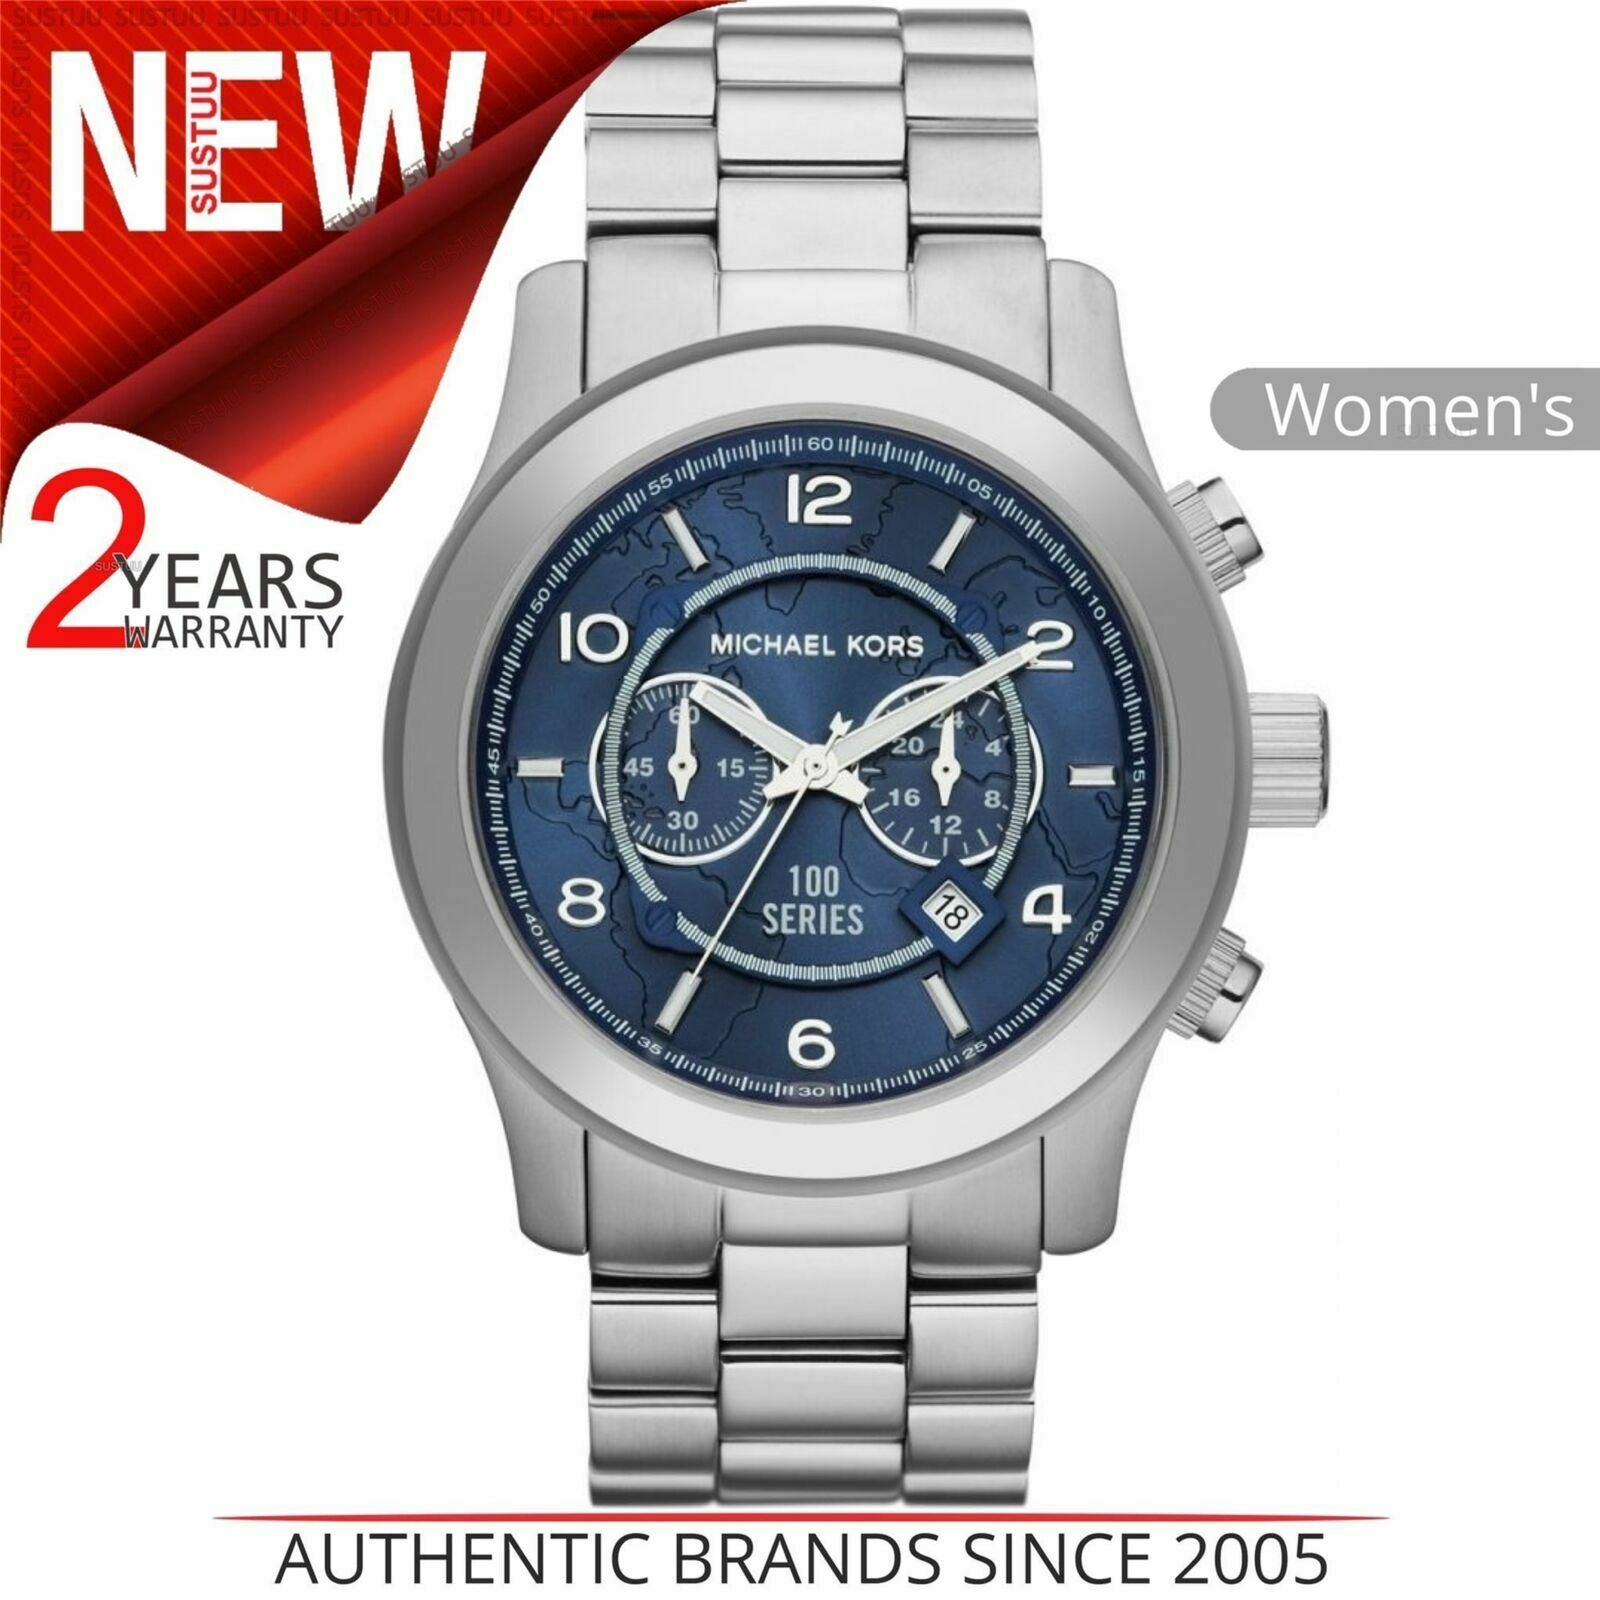 Details about Michael Kors Hunger Stop Men's Watch¦Chronograph Blue Dial¦Stainless Band¦MK8314